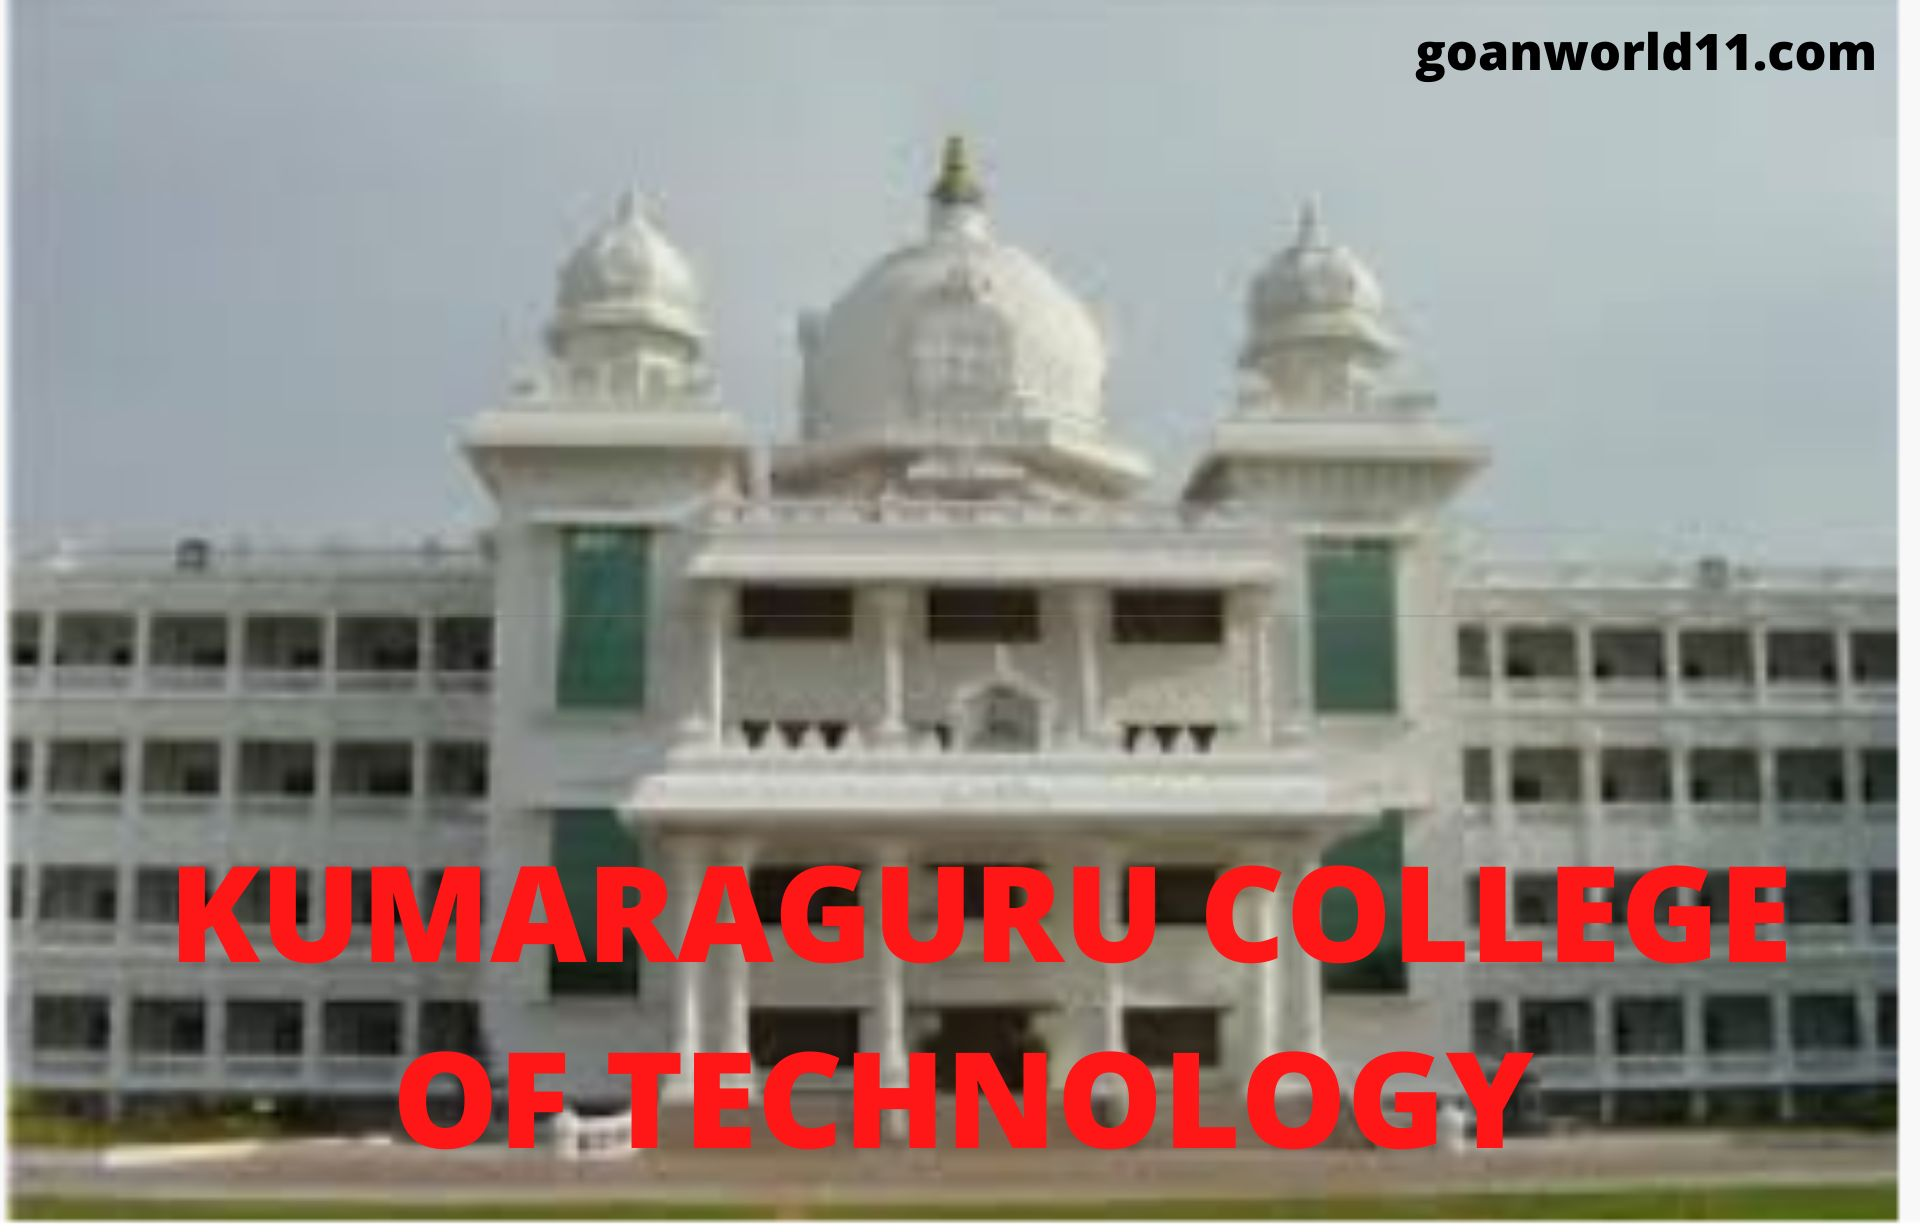 Kumaraguru College of Technology